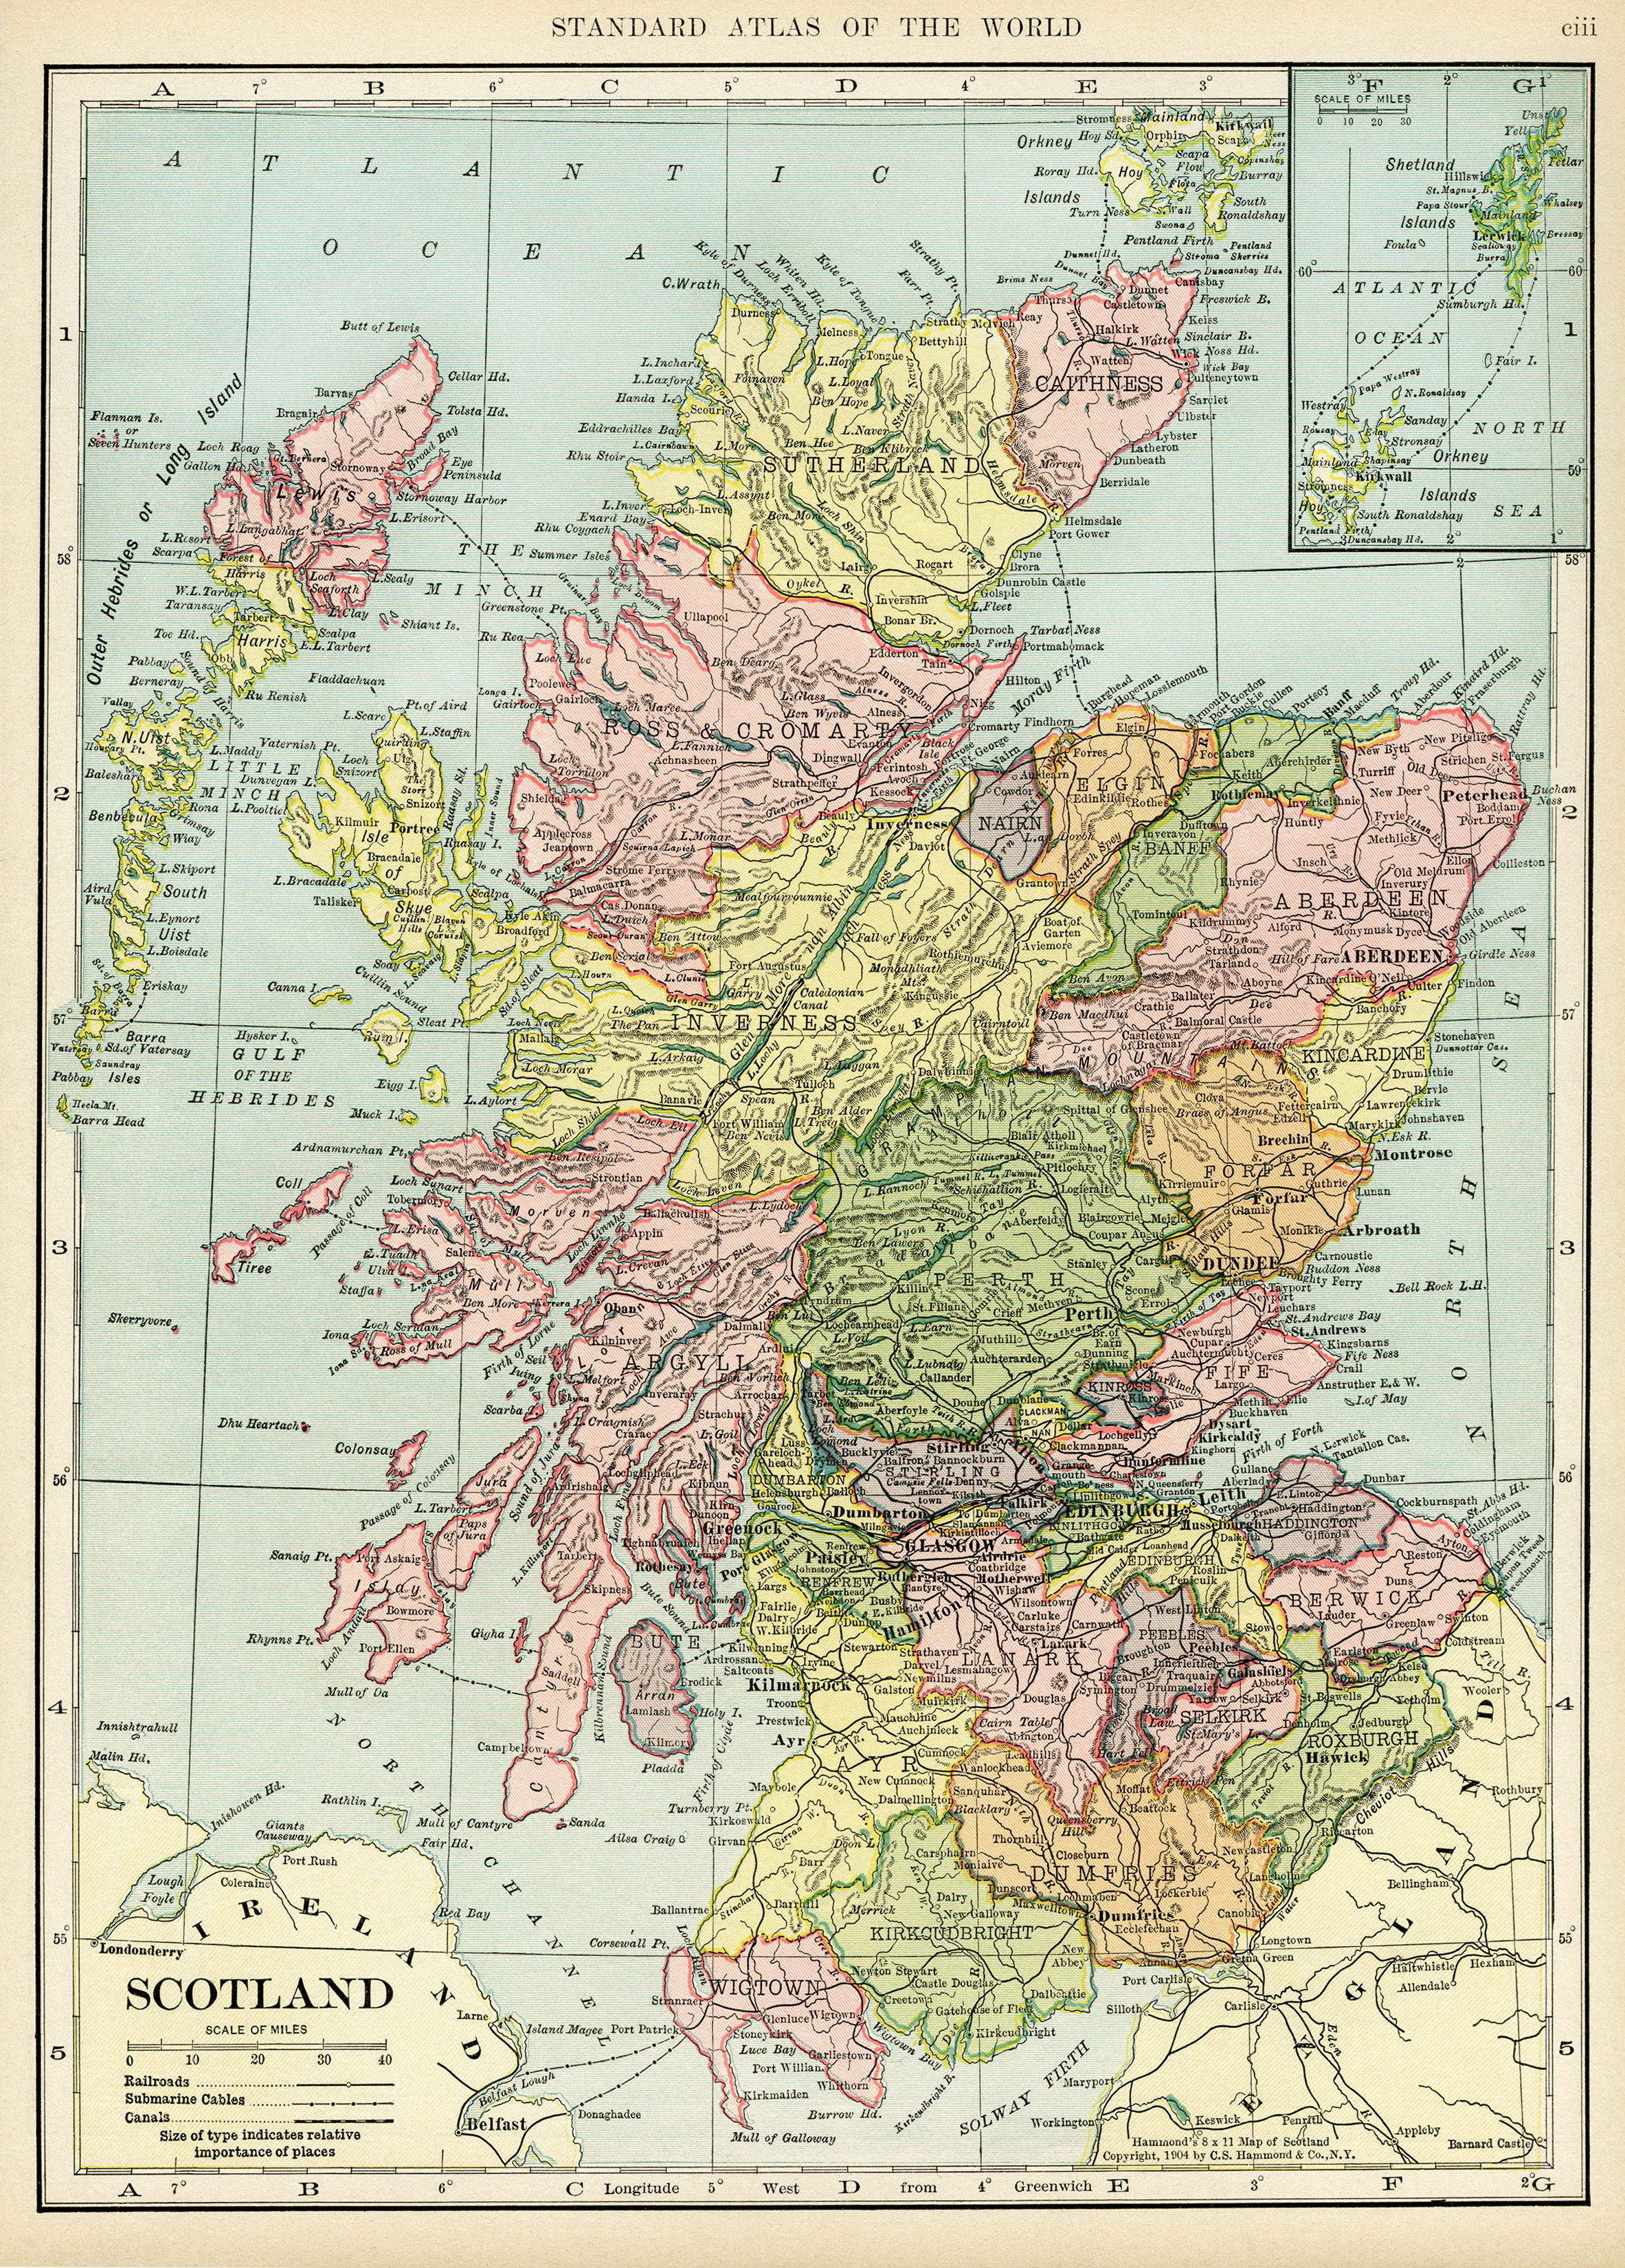 Map of Scotland ~ Free Vintage Image - Old Design Shop Blog